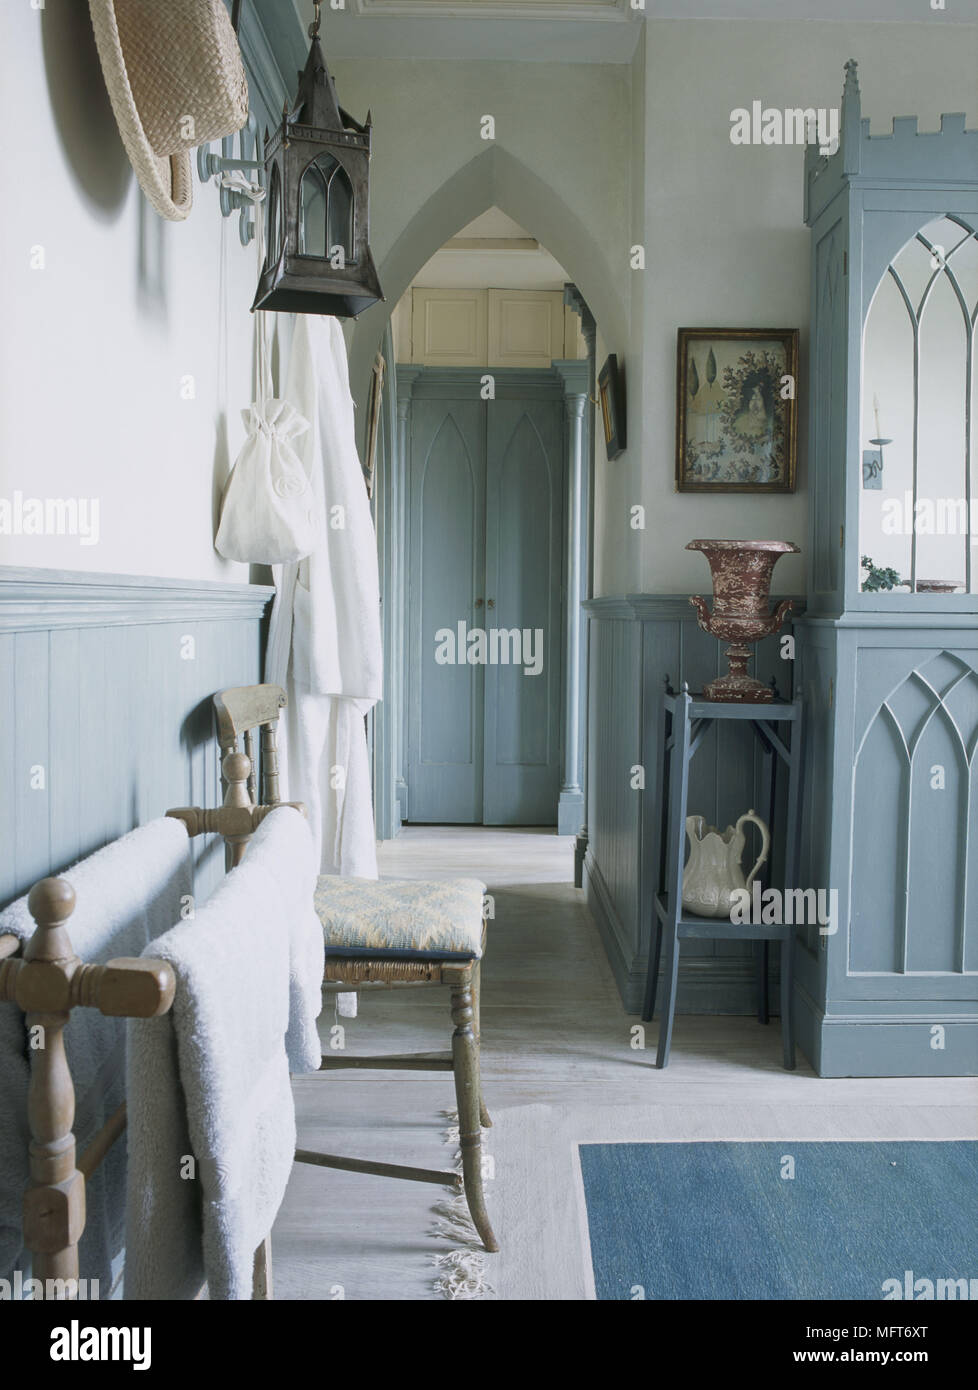 A detail of a traditional country blue bathroom painted gothic